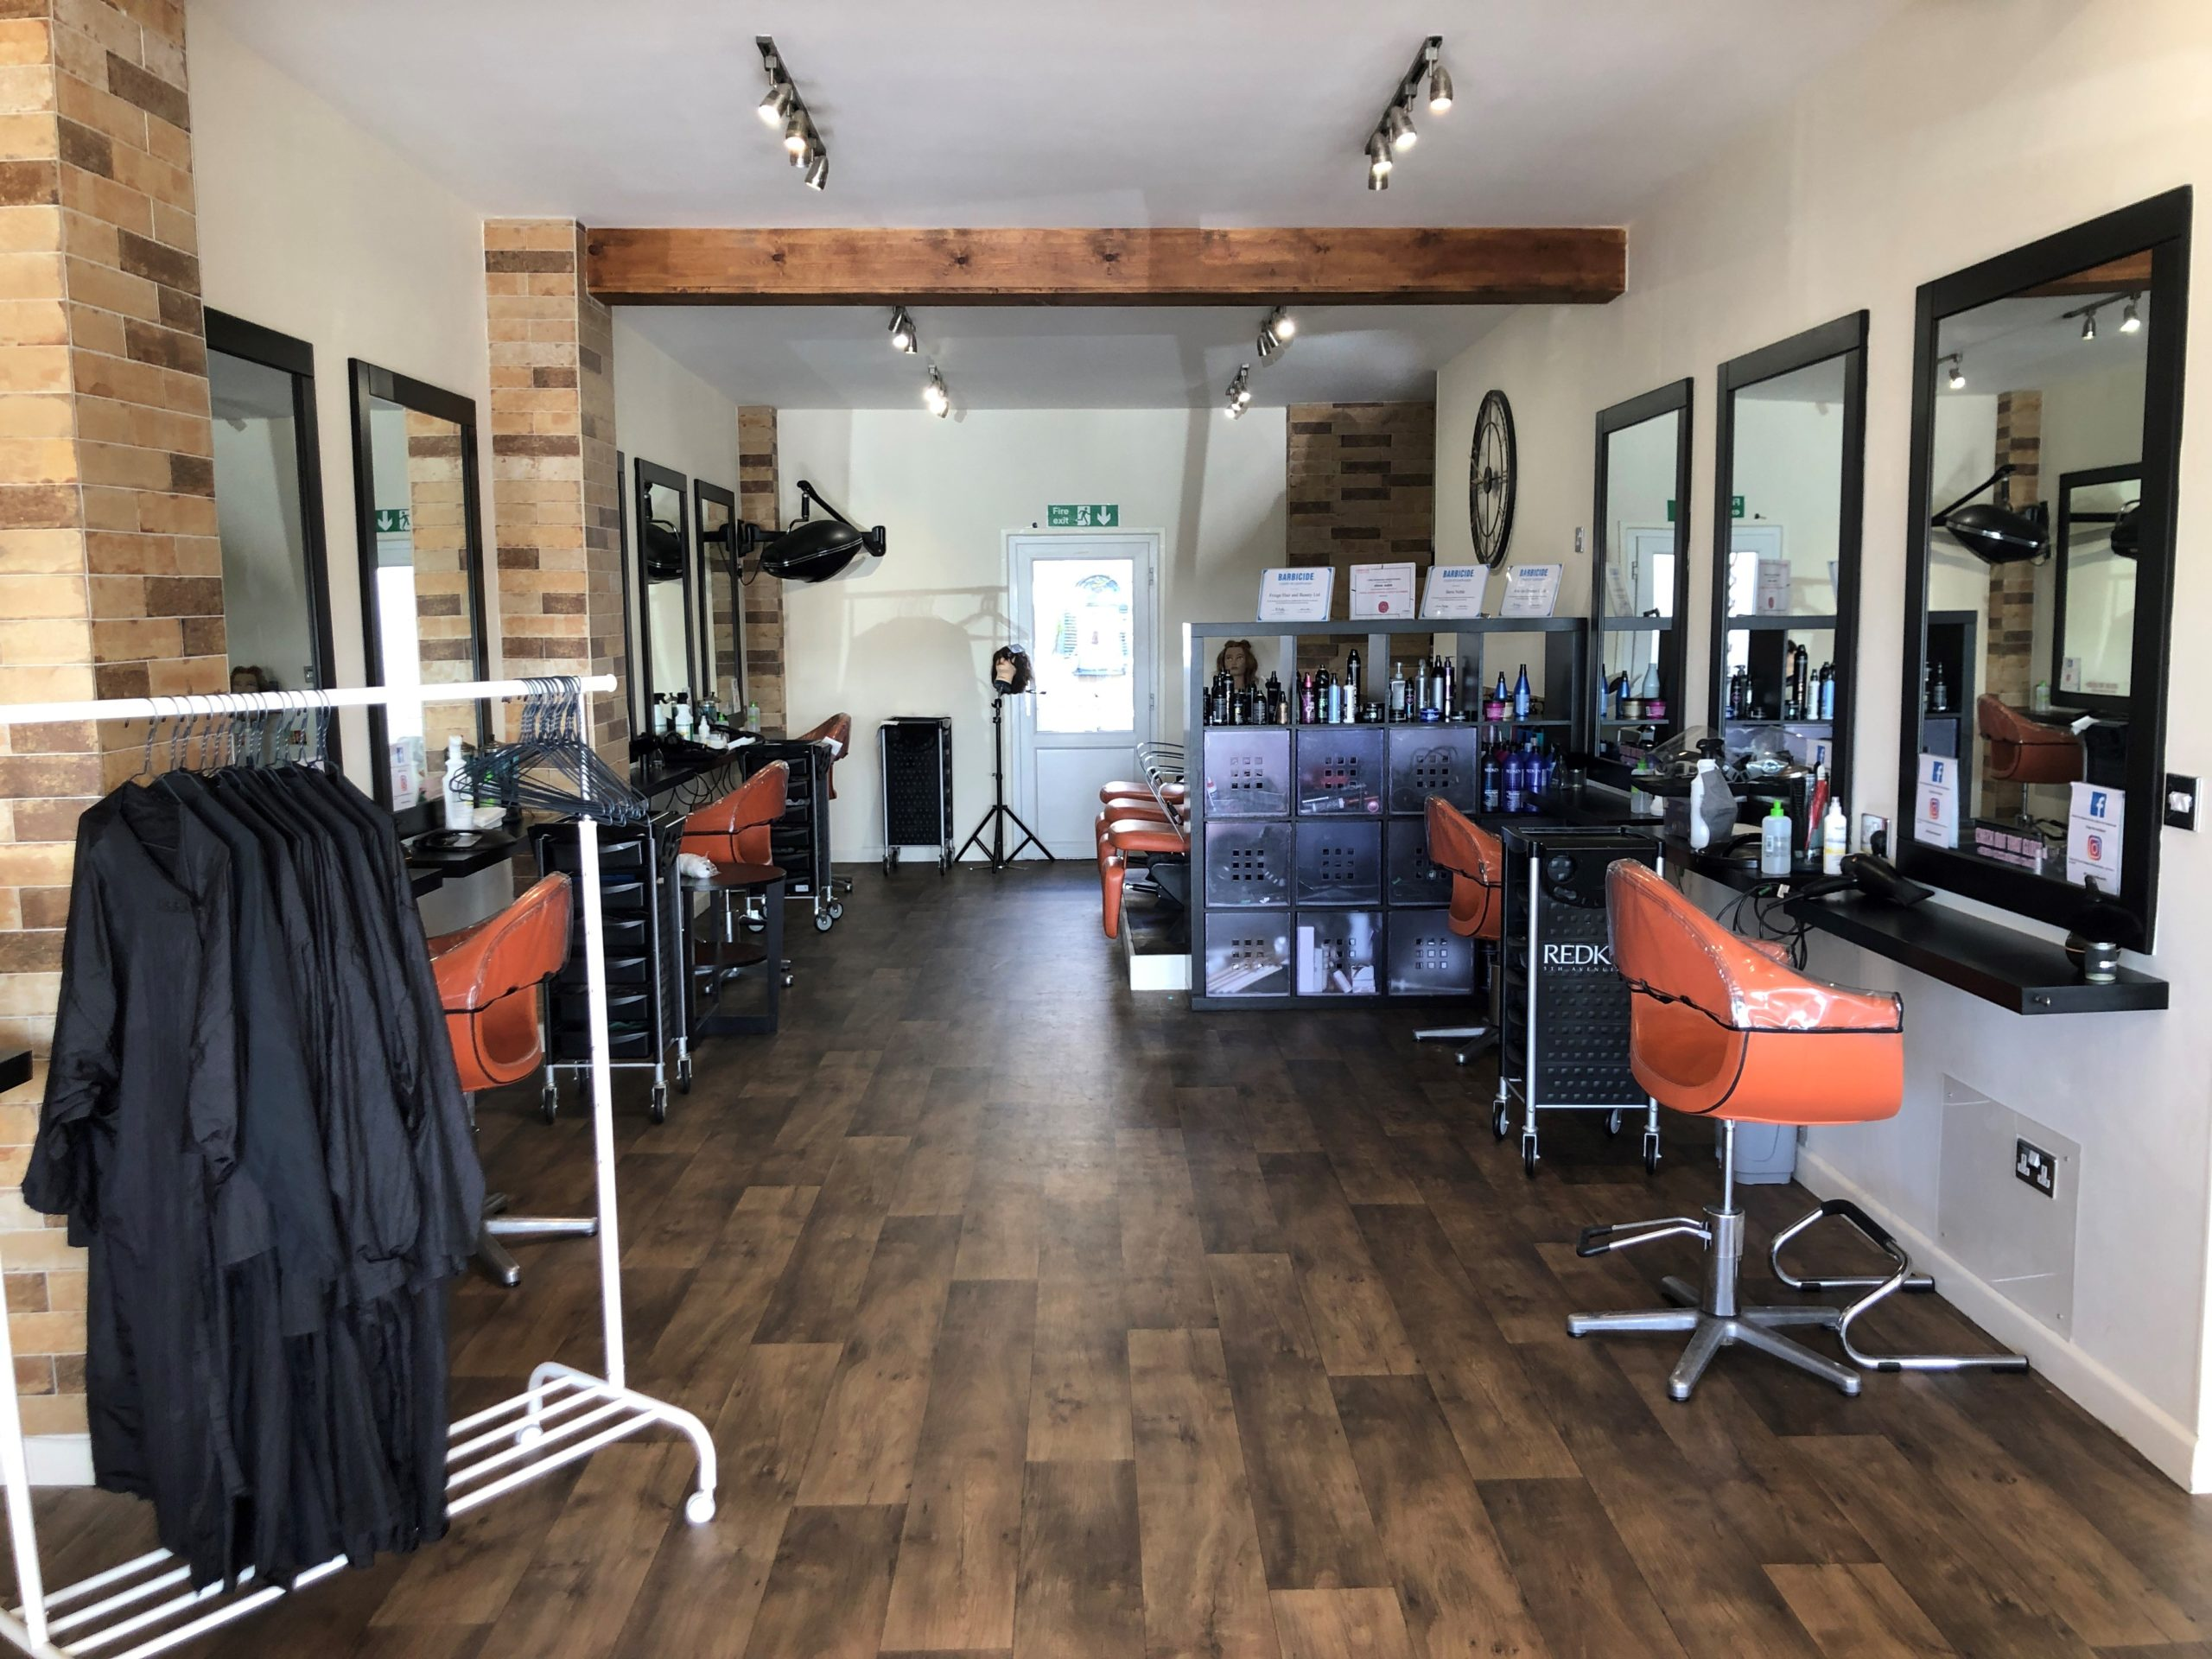 Our stylists are ready for your appointment